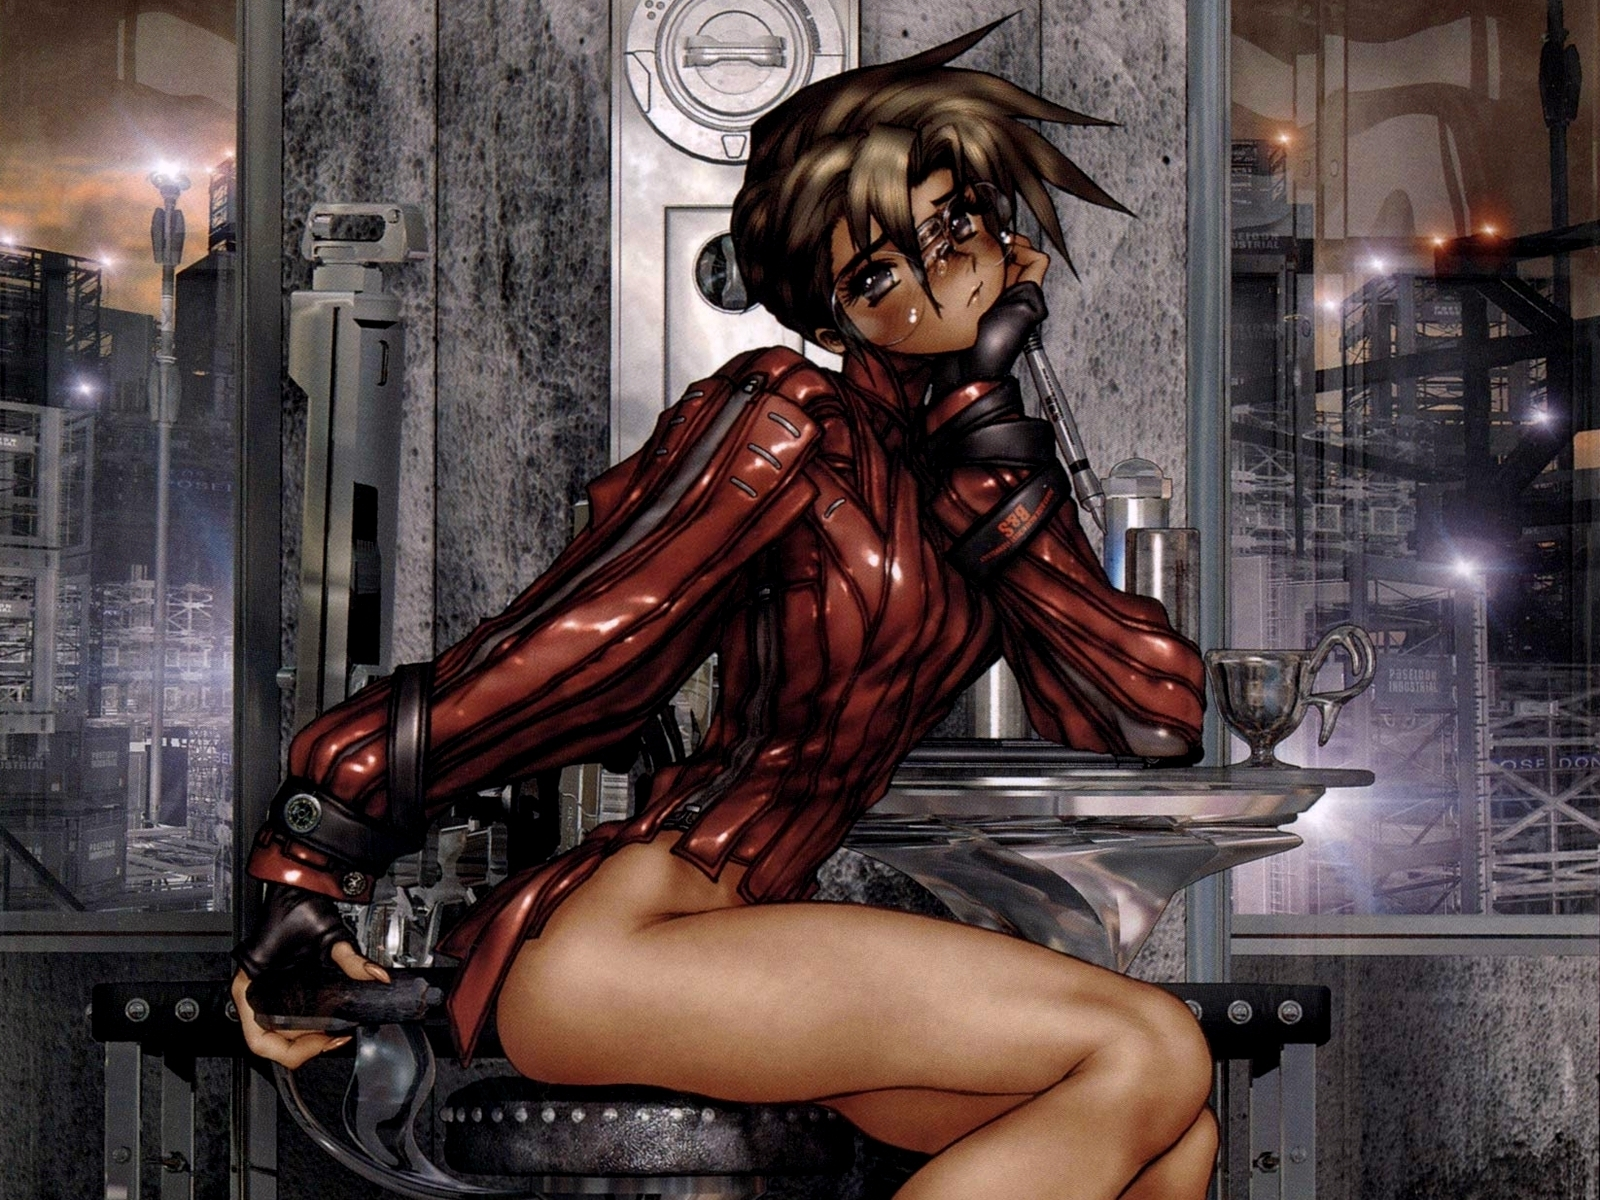 Masamune Shirow anime girls HD Wallpaper